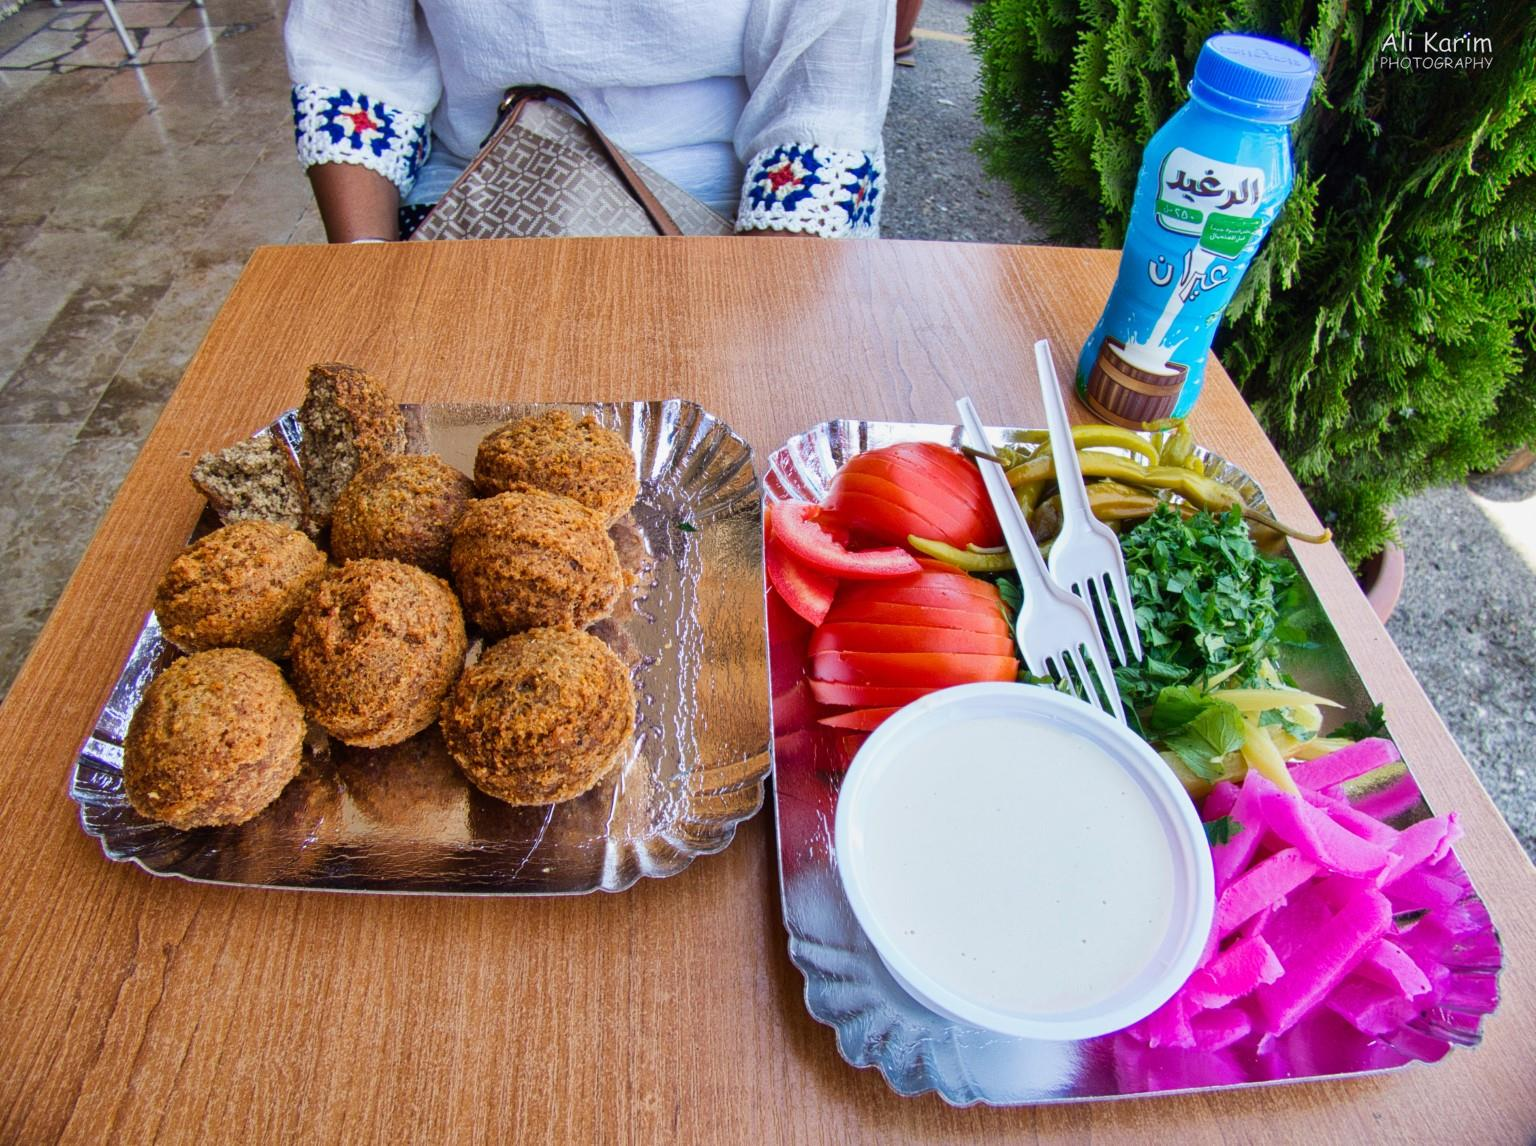 Druze and the Chouf Mountains Falafel lunch plate at Abou Samir